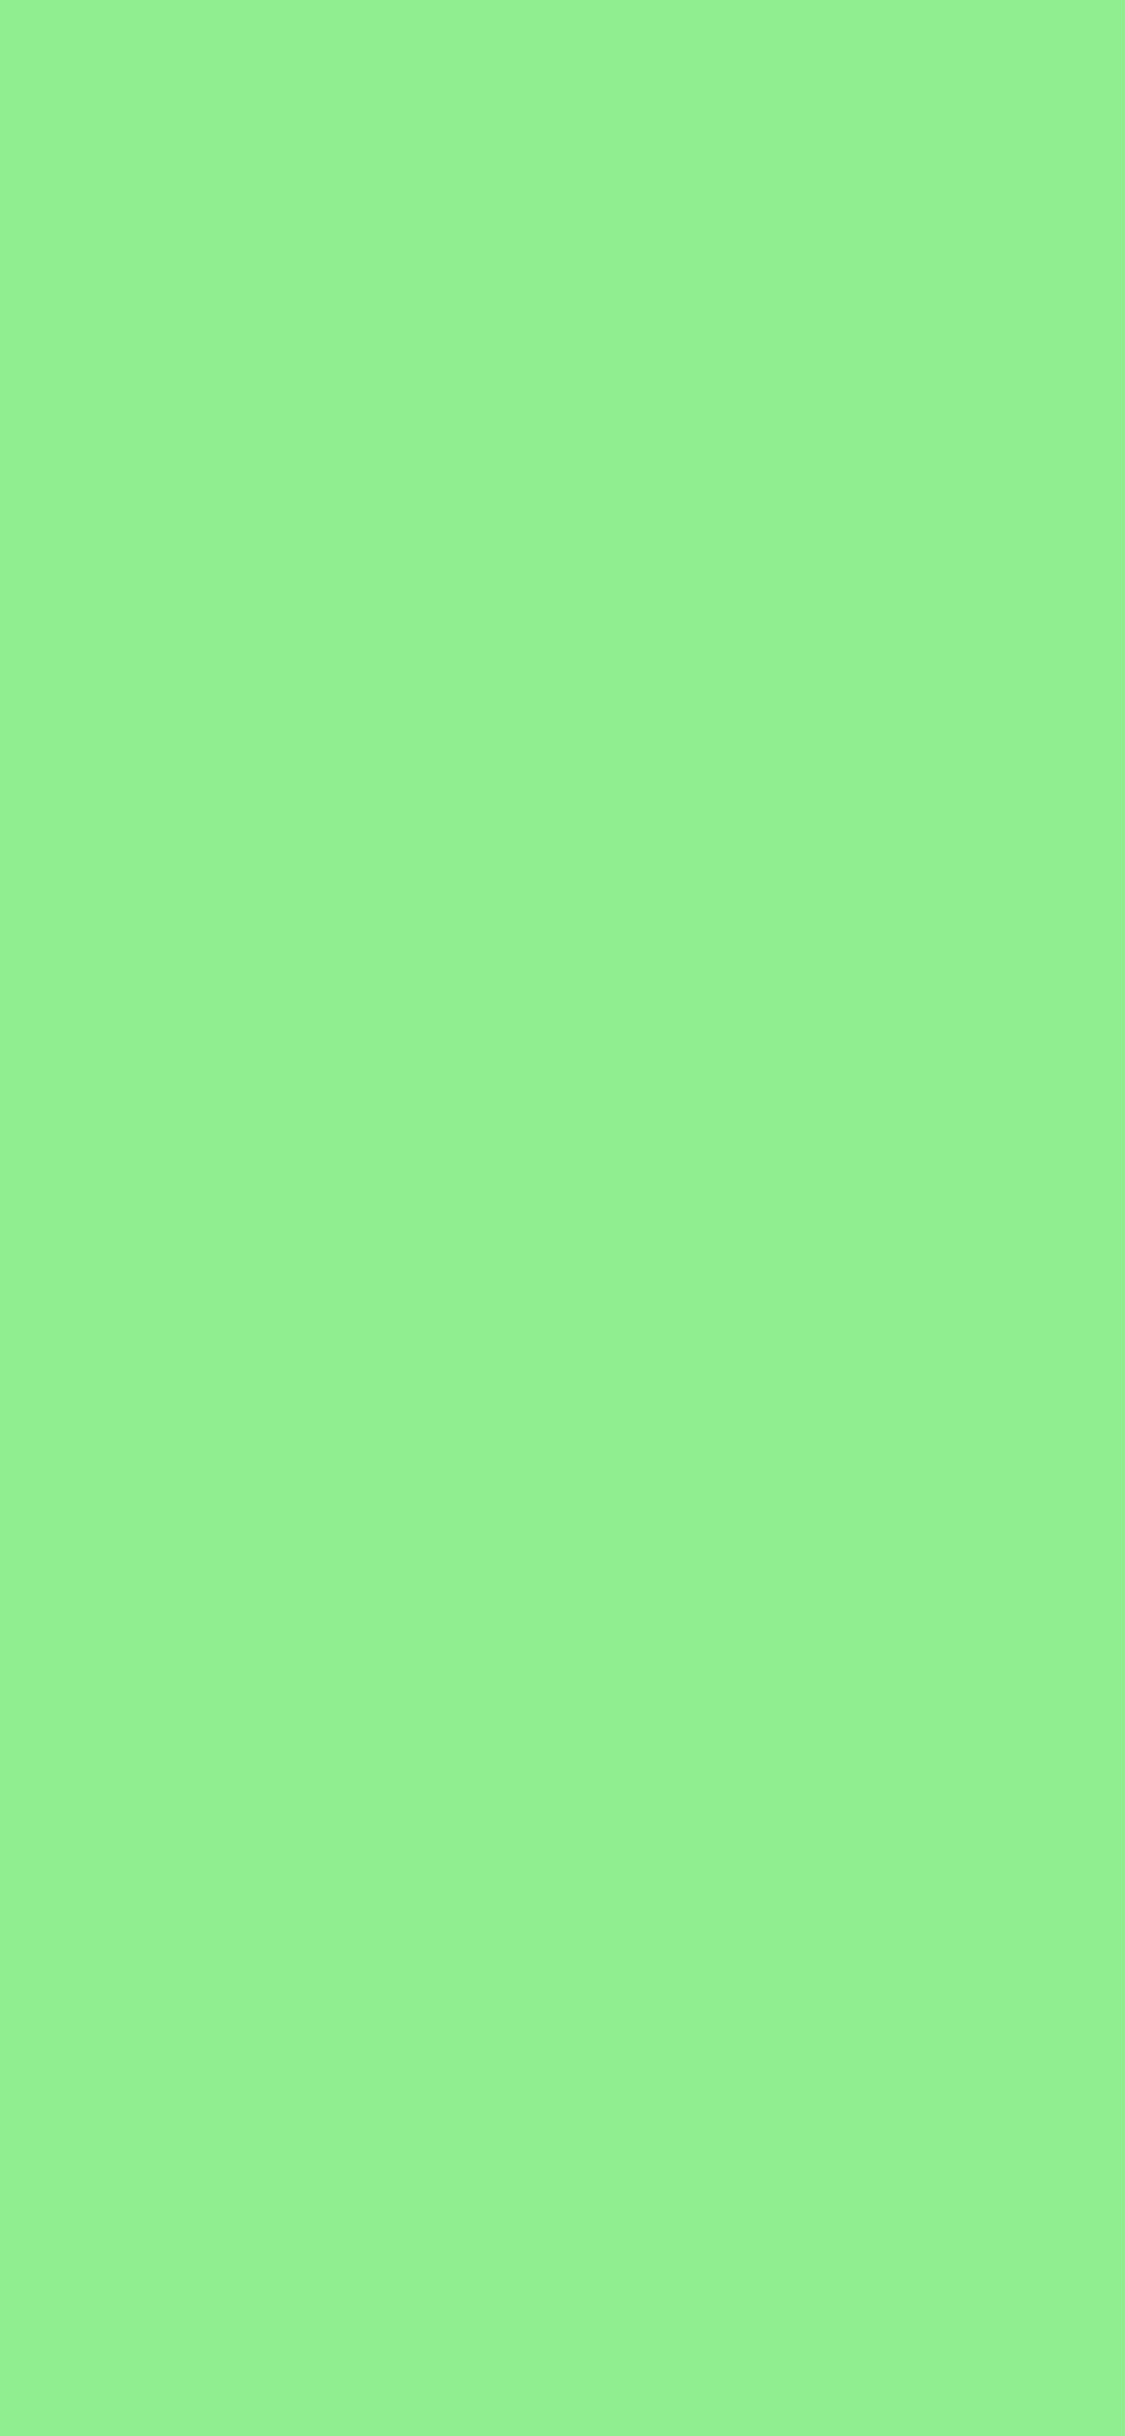 1125x2436 Light Green Solid Color Background